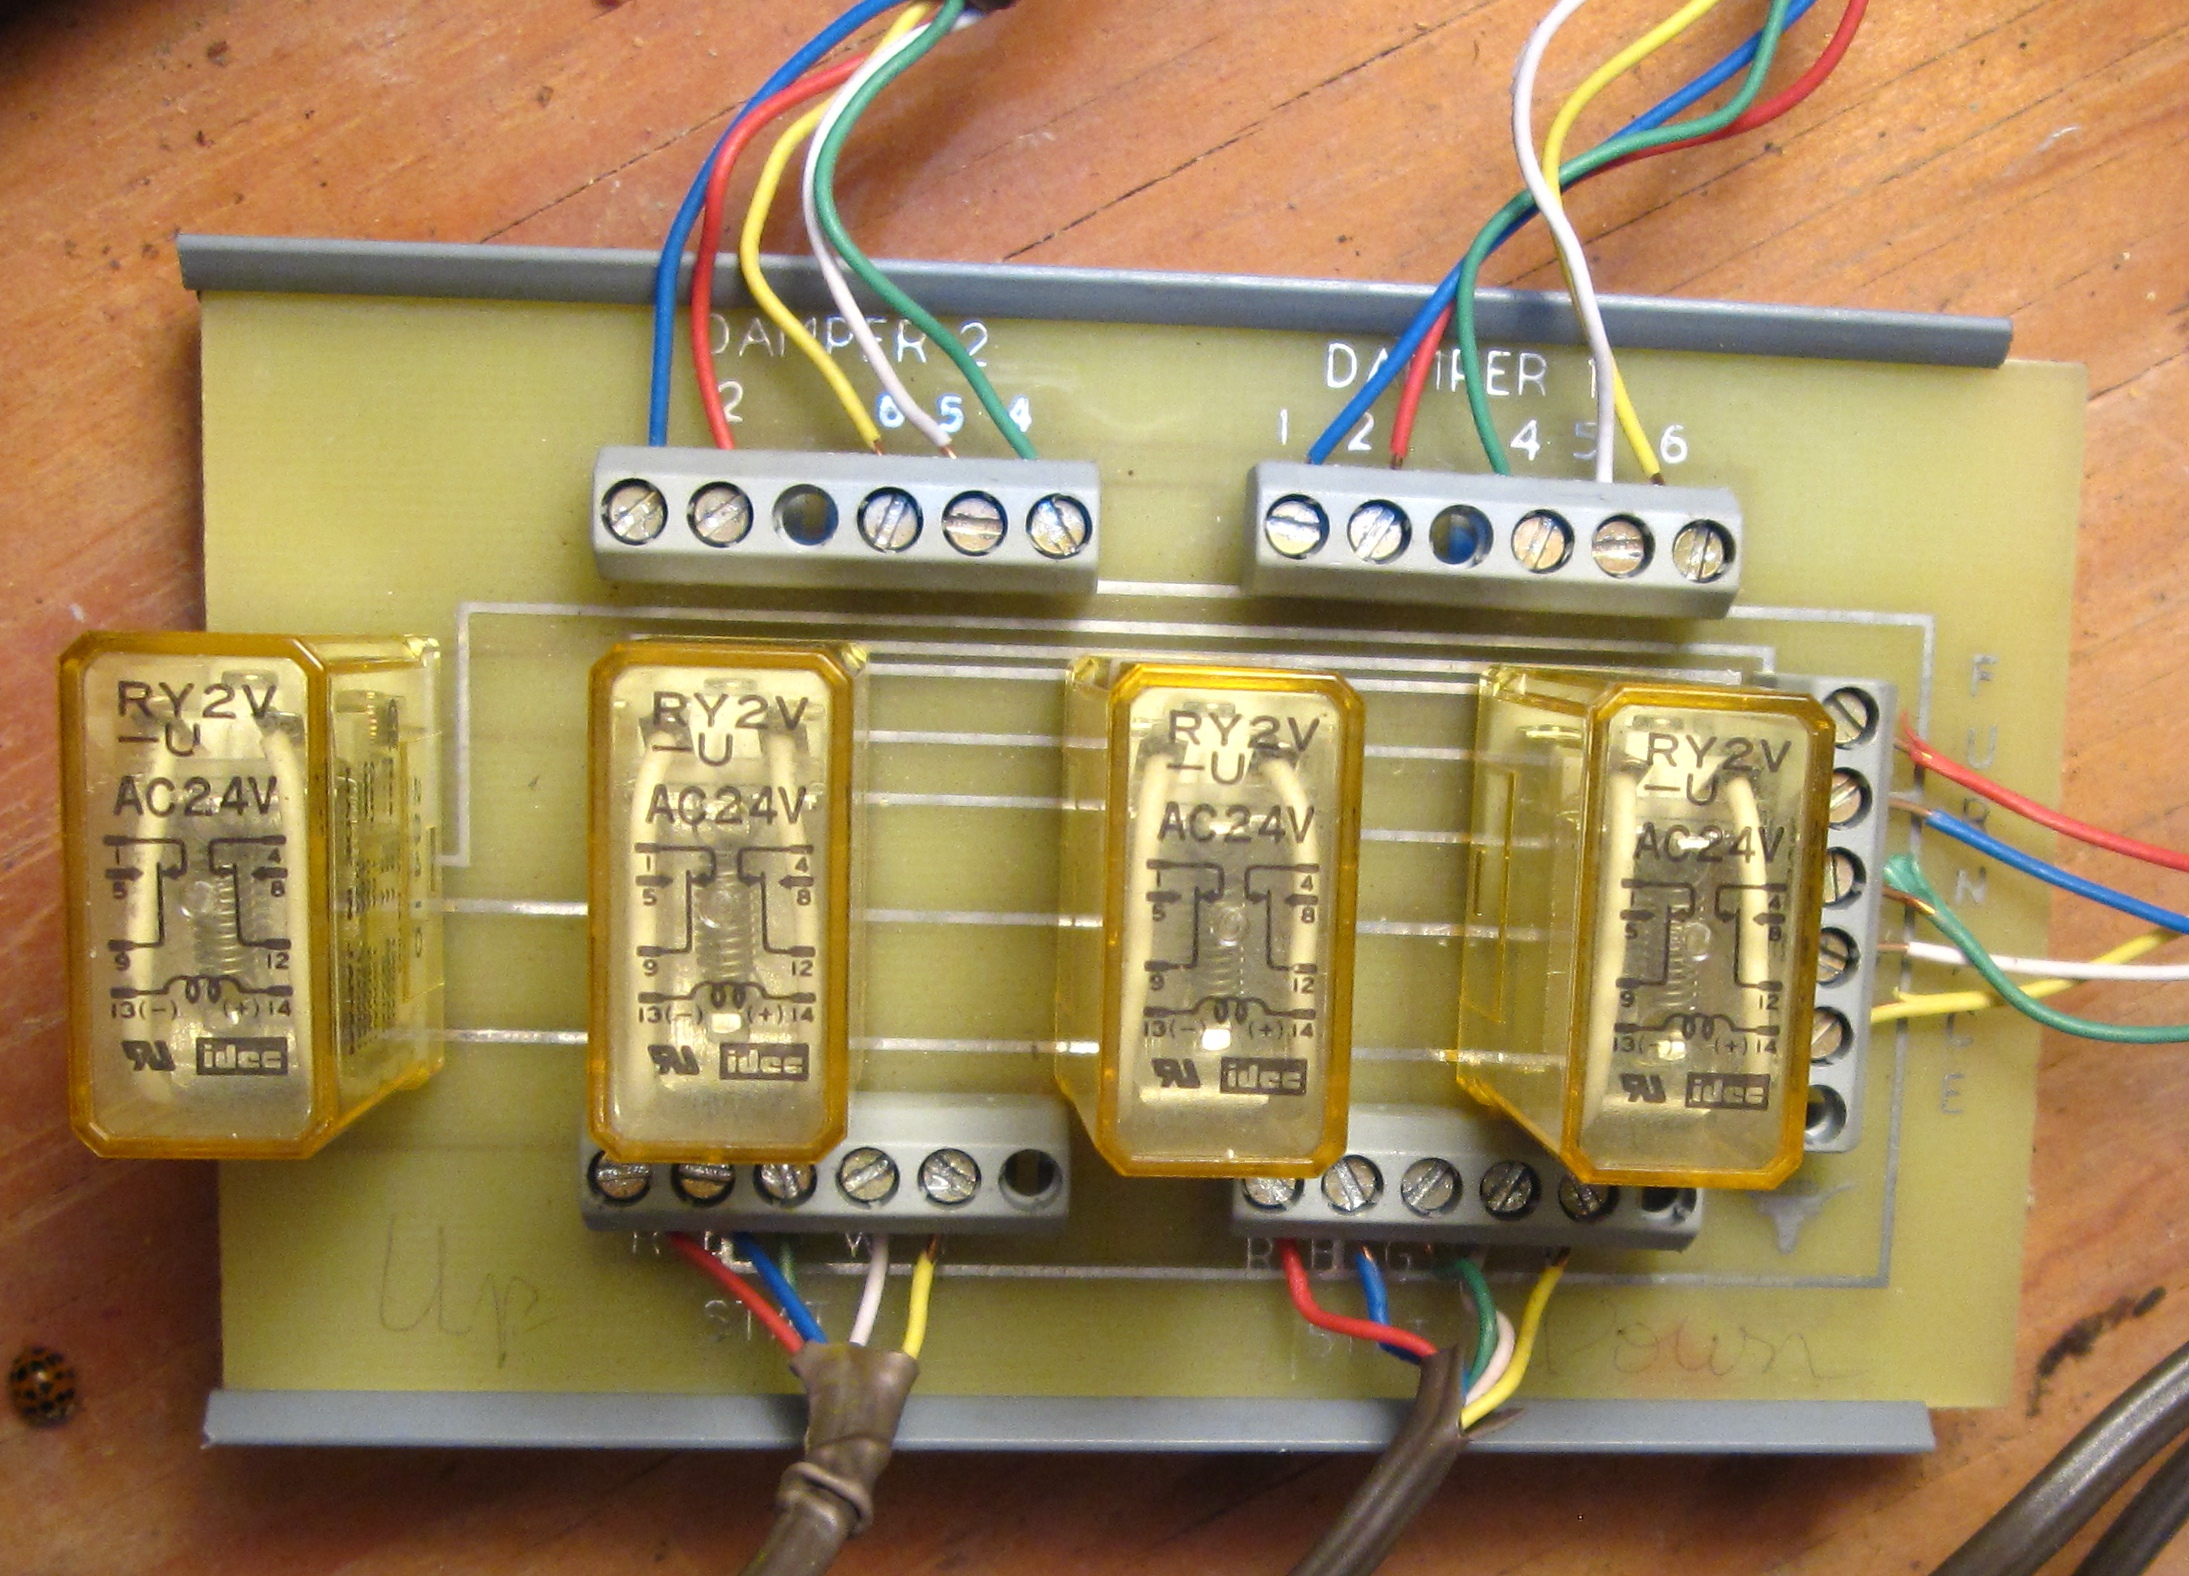 I Have A Two Zone Ac Furnace System Controlled By Thermostats Digital Circuit Board Wiring Diagram Thermostat Damper Control Front